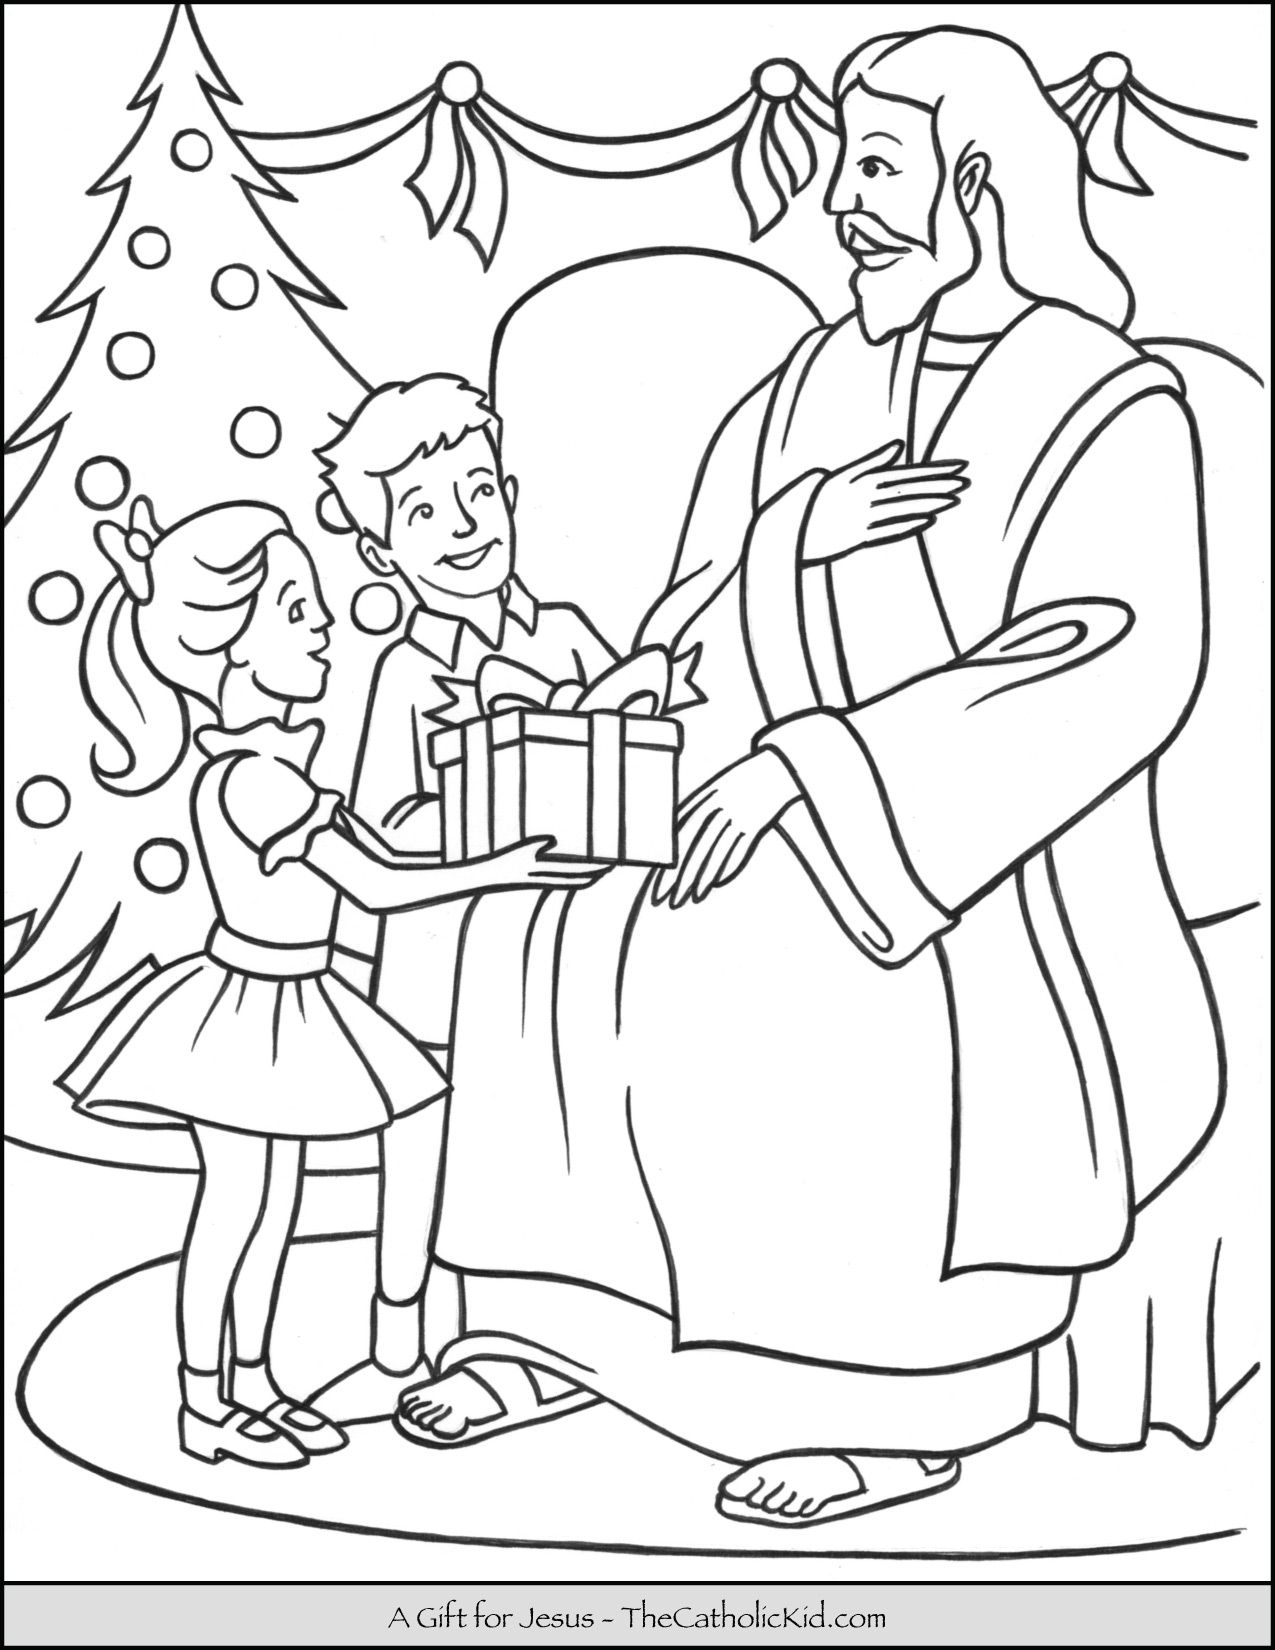 Coloring Pages For Major Church Calendar Days Jesus Coloring Pages Christmas Coloring Pages Christmas Coloring Sheets